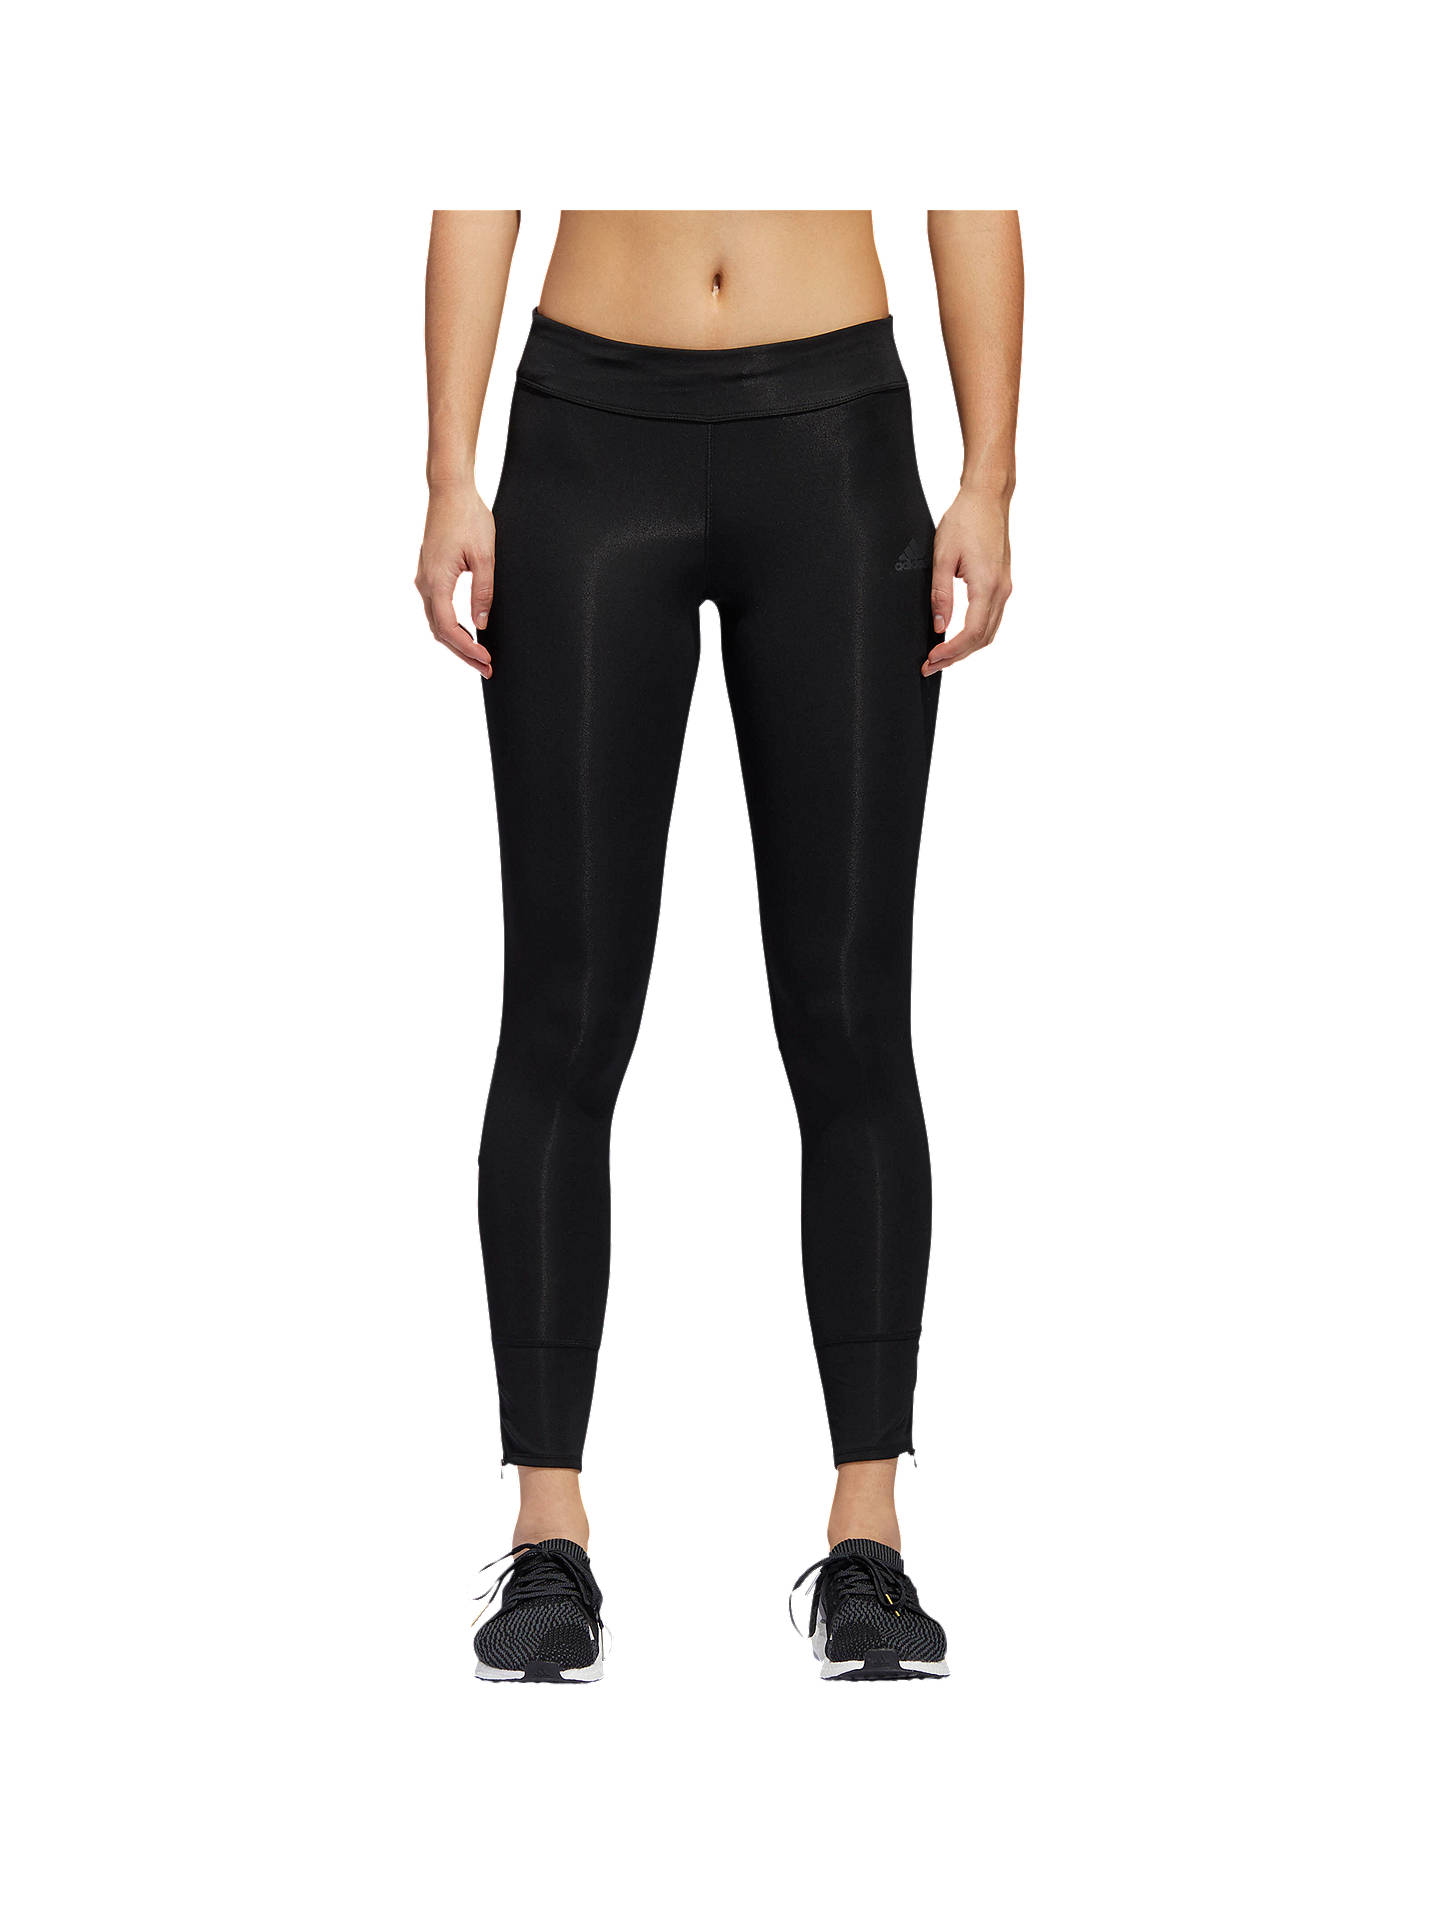 Details about adidas Response Womens Running Tights Black Soft Fabric Stretch Waist XXS XS S